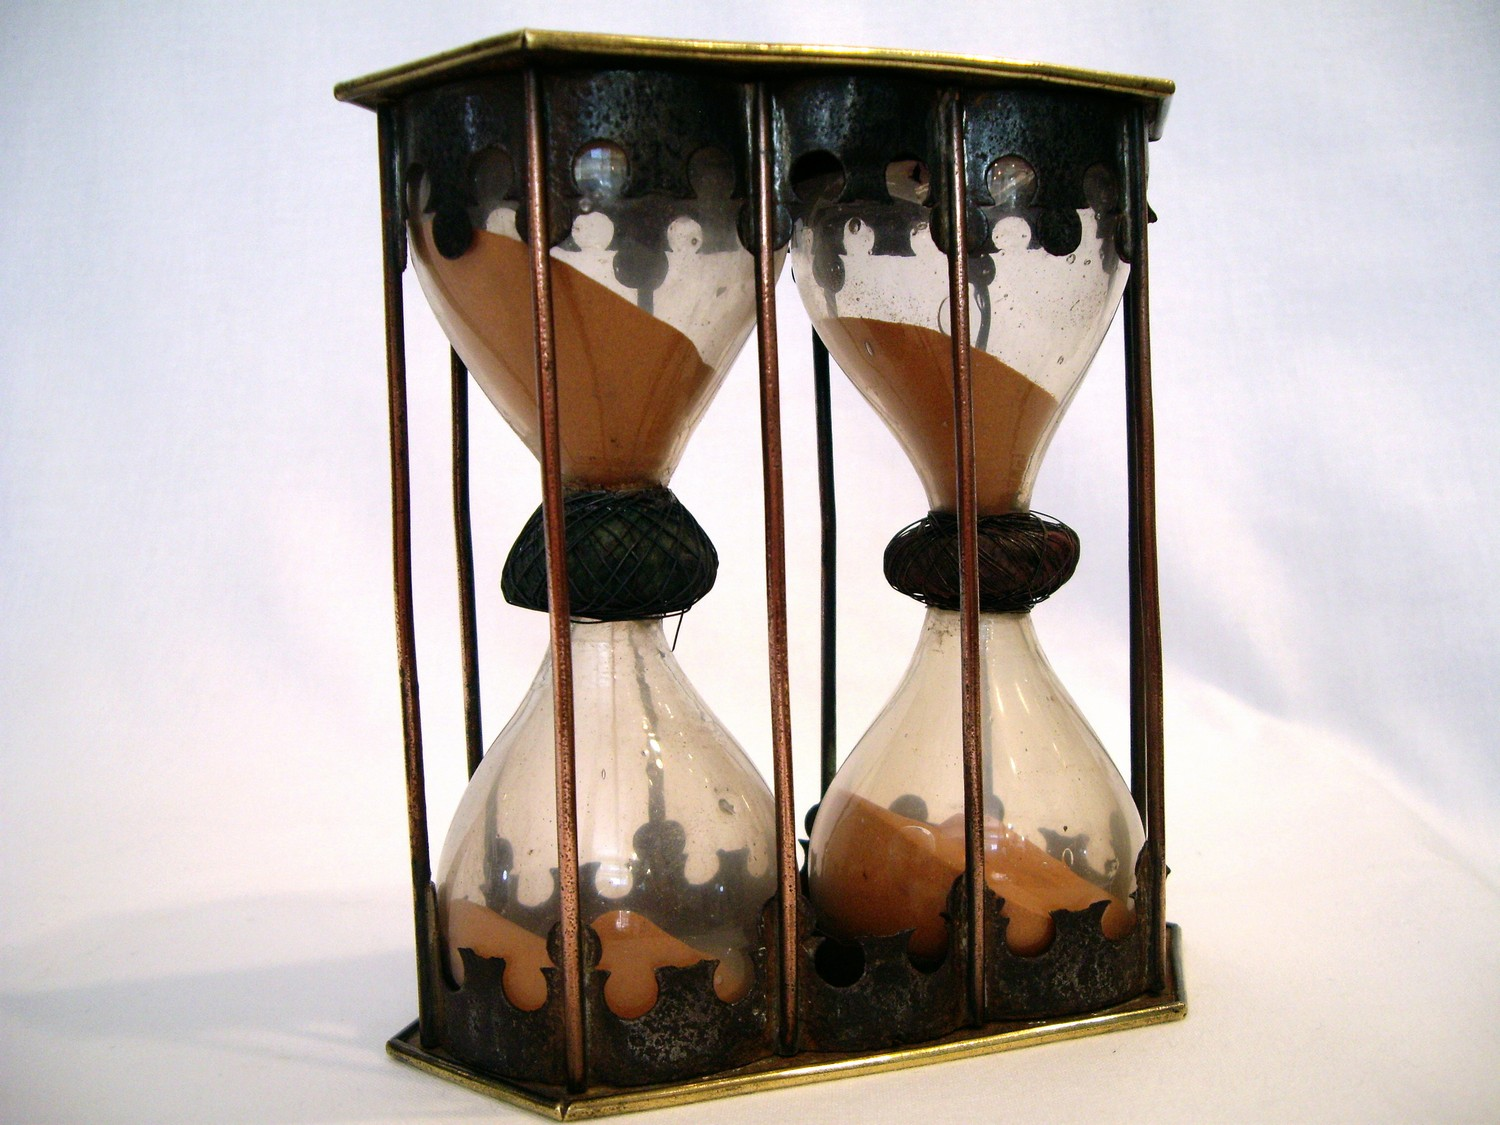 DOUBLE MARITIME HOURGLASS 17TH CENTURY